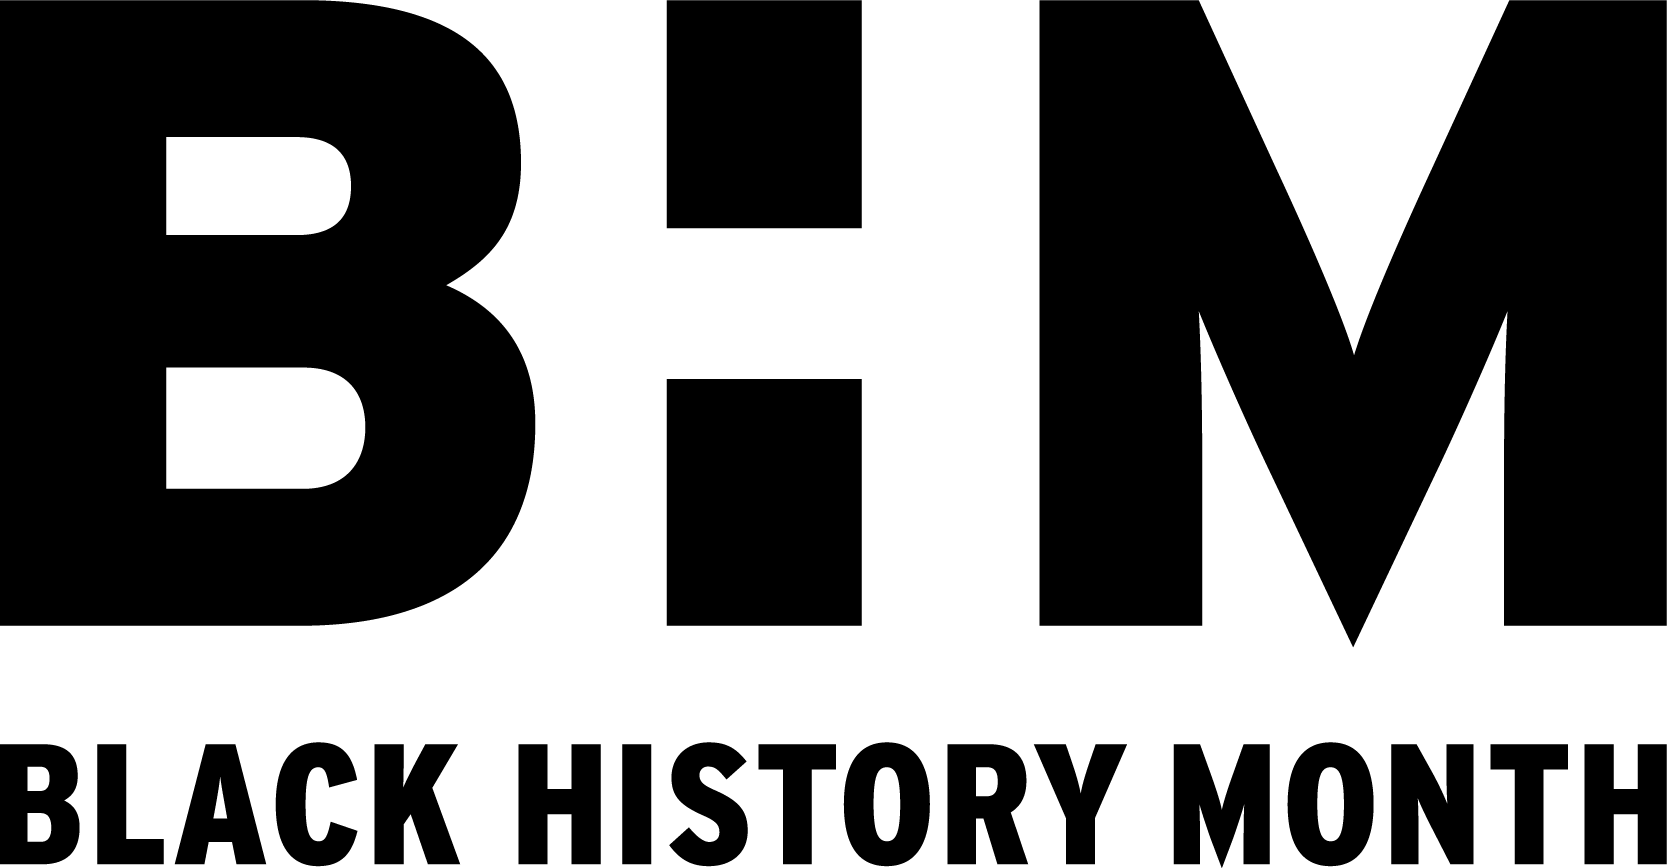 black history month 2018 - official black history month 2018